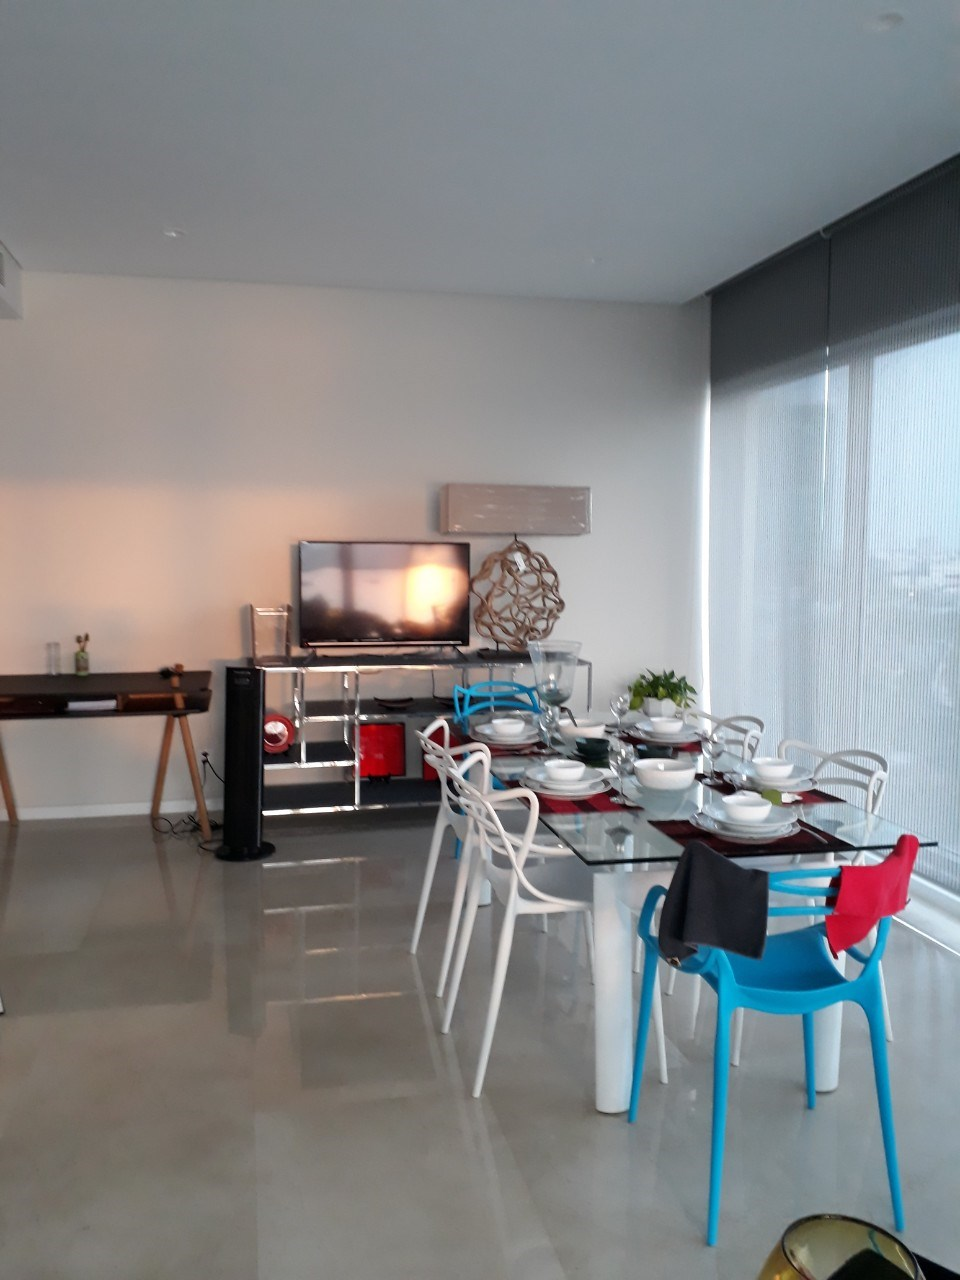 DI0666 - Diamond Island Apartment For Rent & Sale in Ho Chi Minh City - 2 bedroom